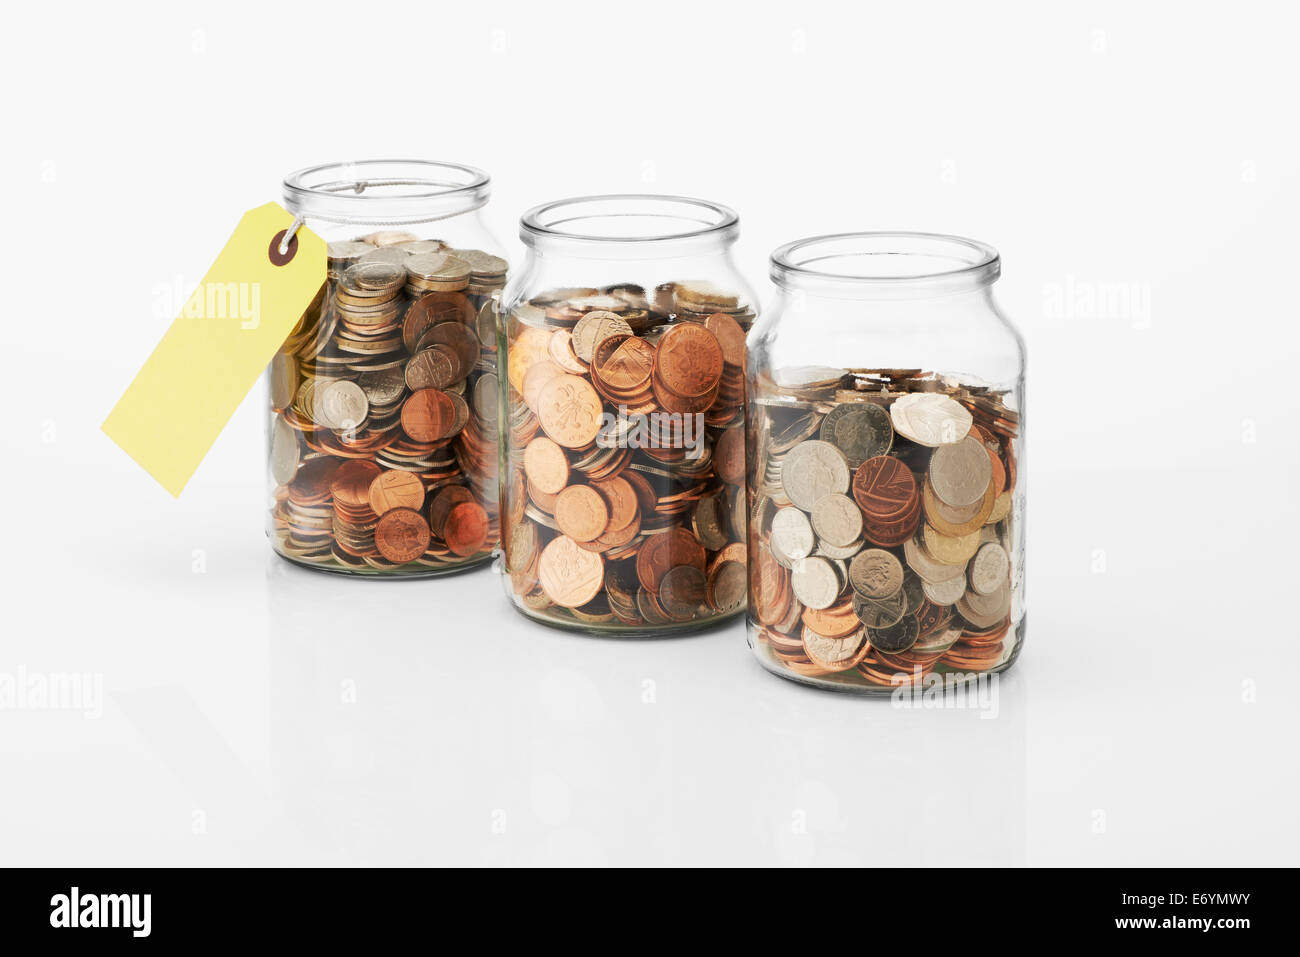 Savings Jar Stock Photo